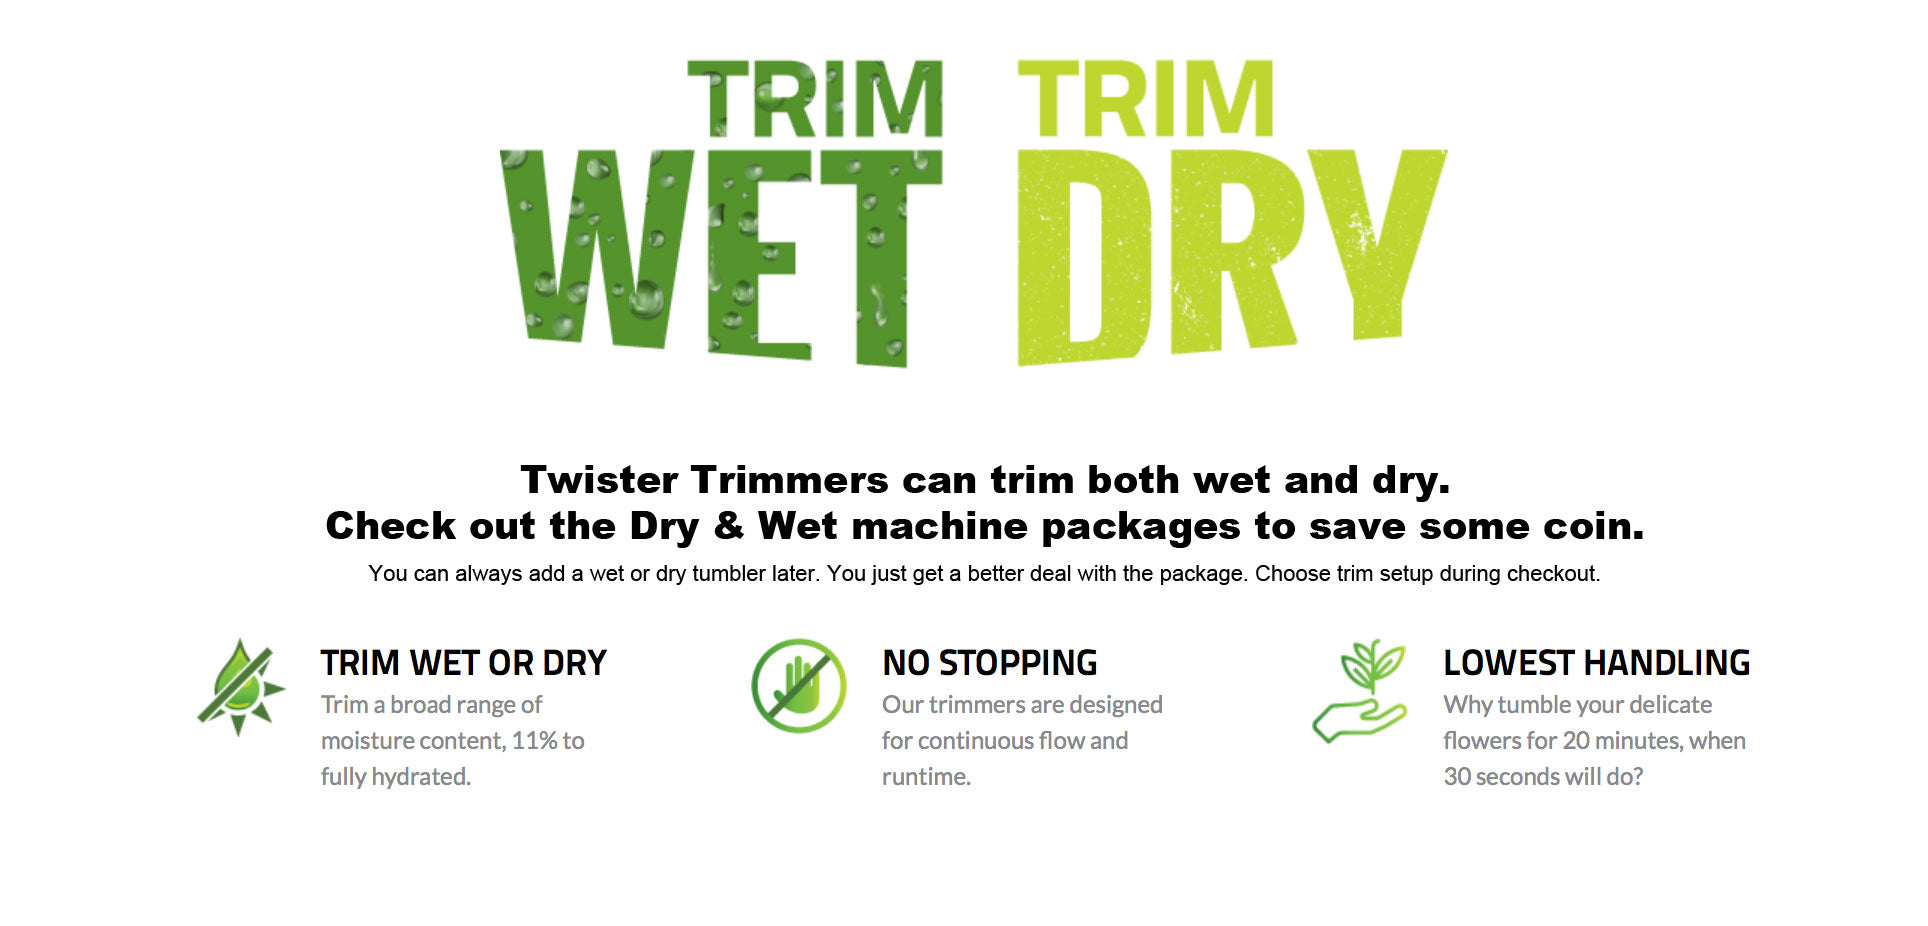 Wet or Dry Trim with Twister Trimmers